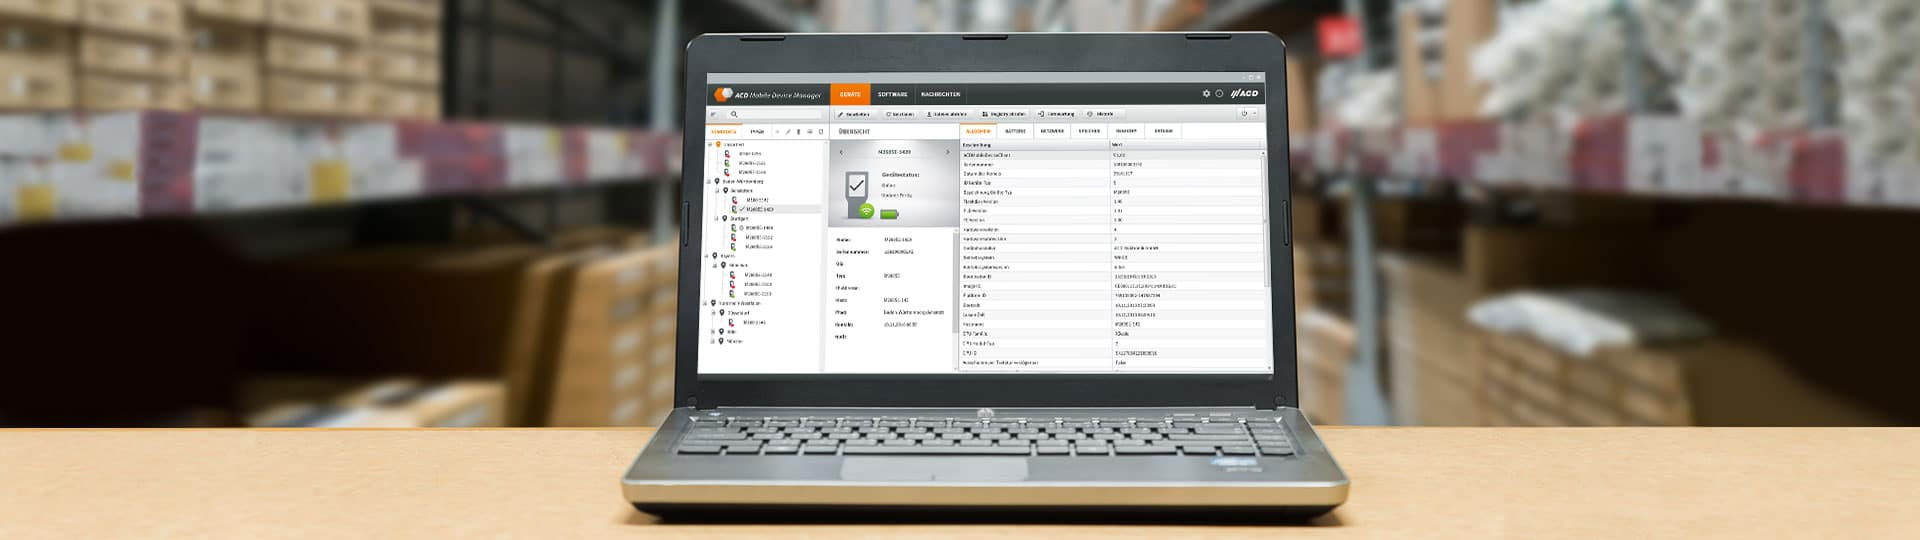 ACD Mobile Device Manager – multifunktionale ACD Anwendungen